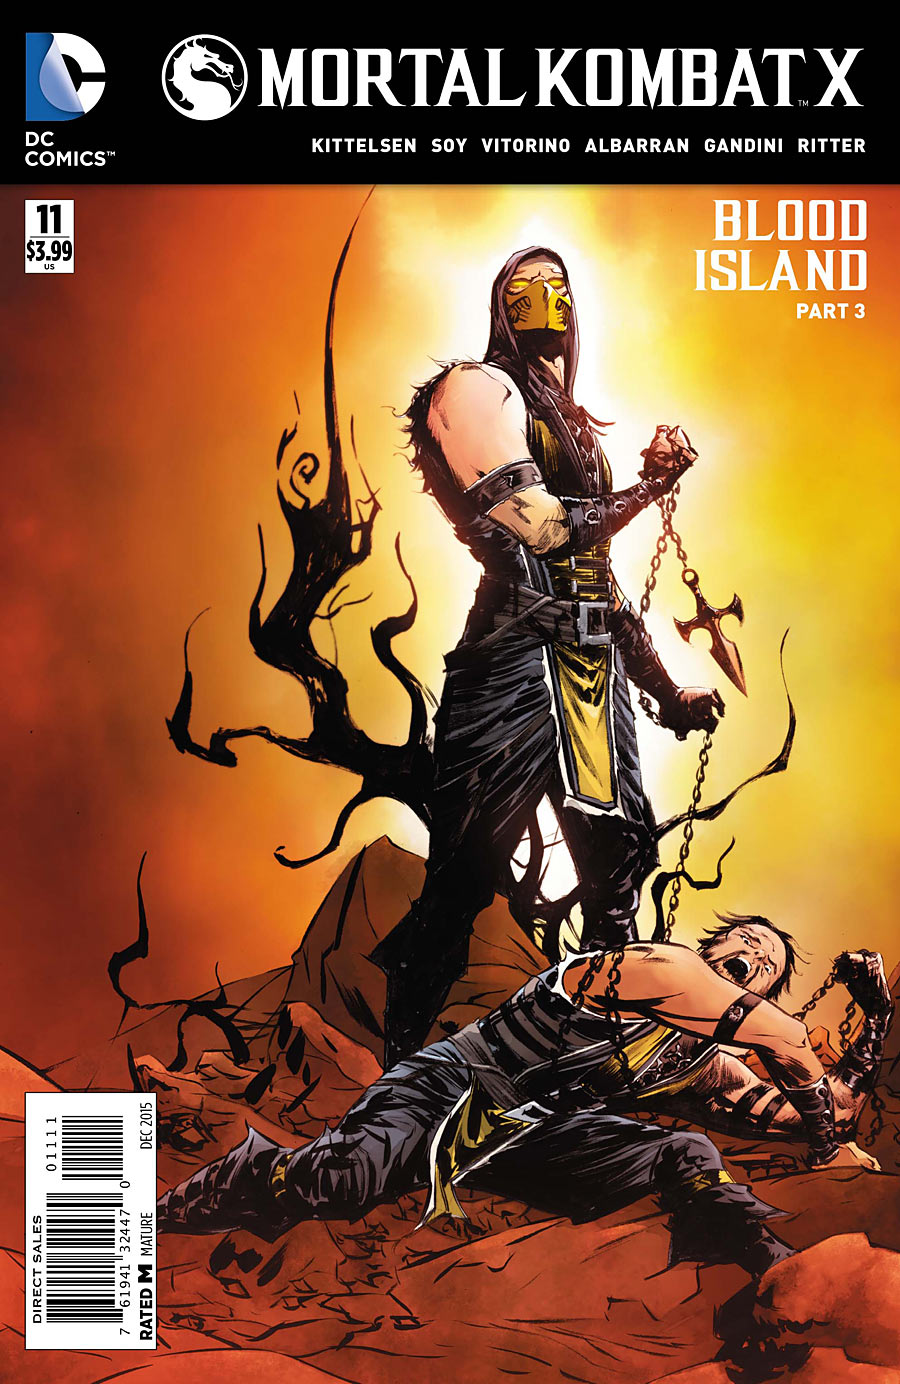 Mortal Kombat X Vol 1 11